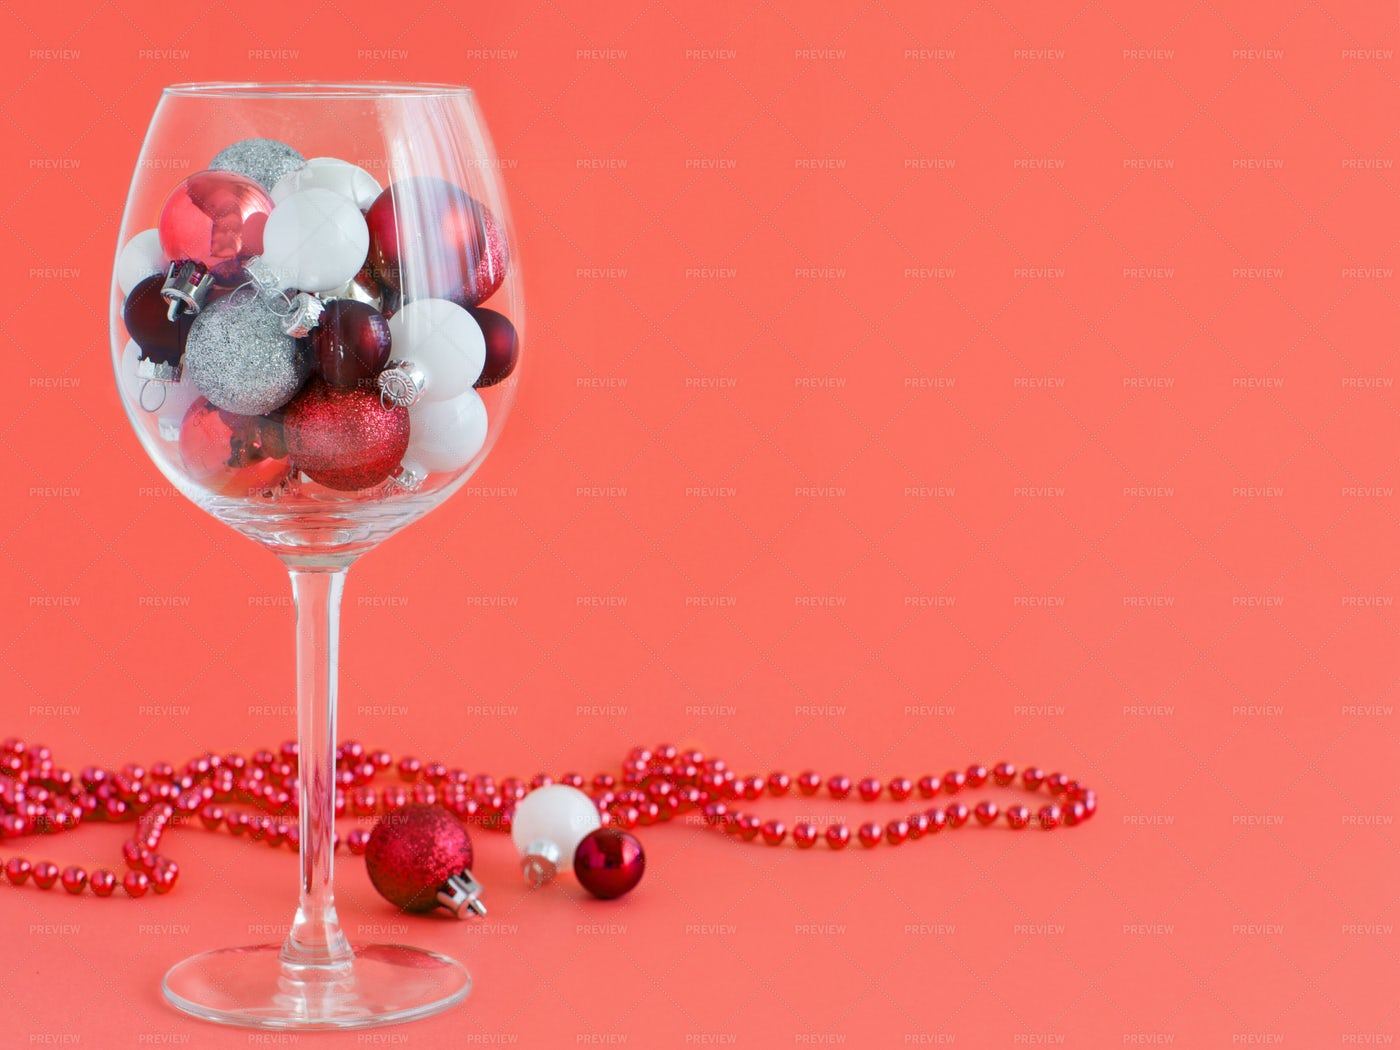 Christmas Baubles On Red: Stock Photos